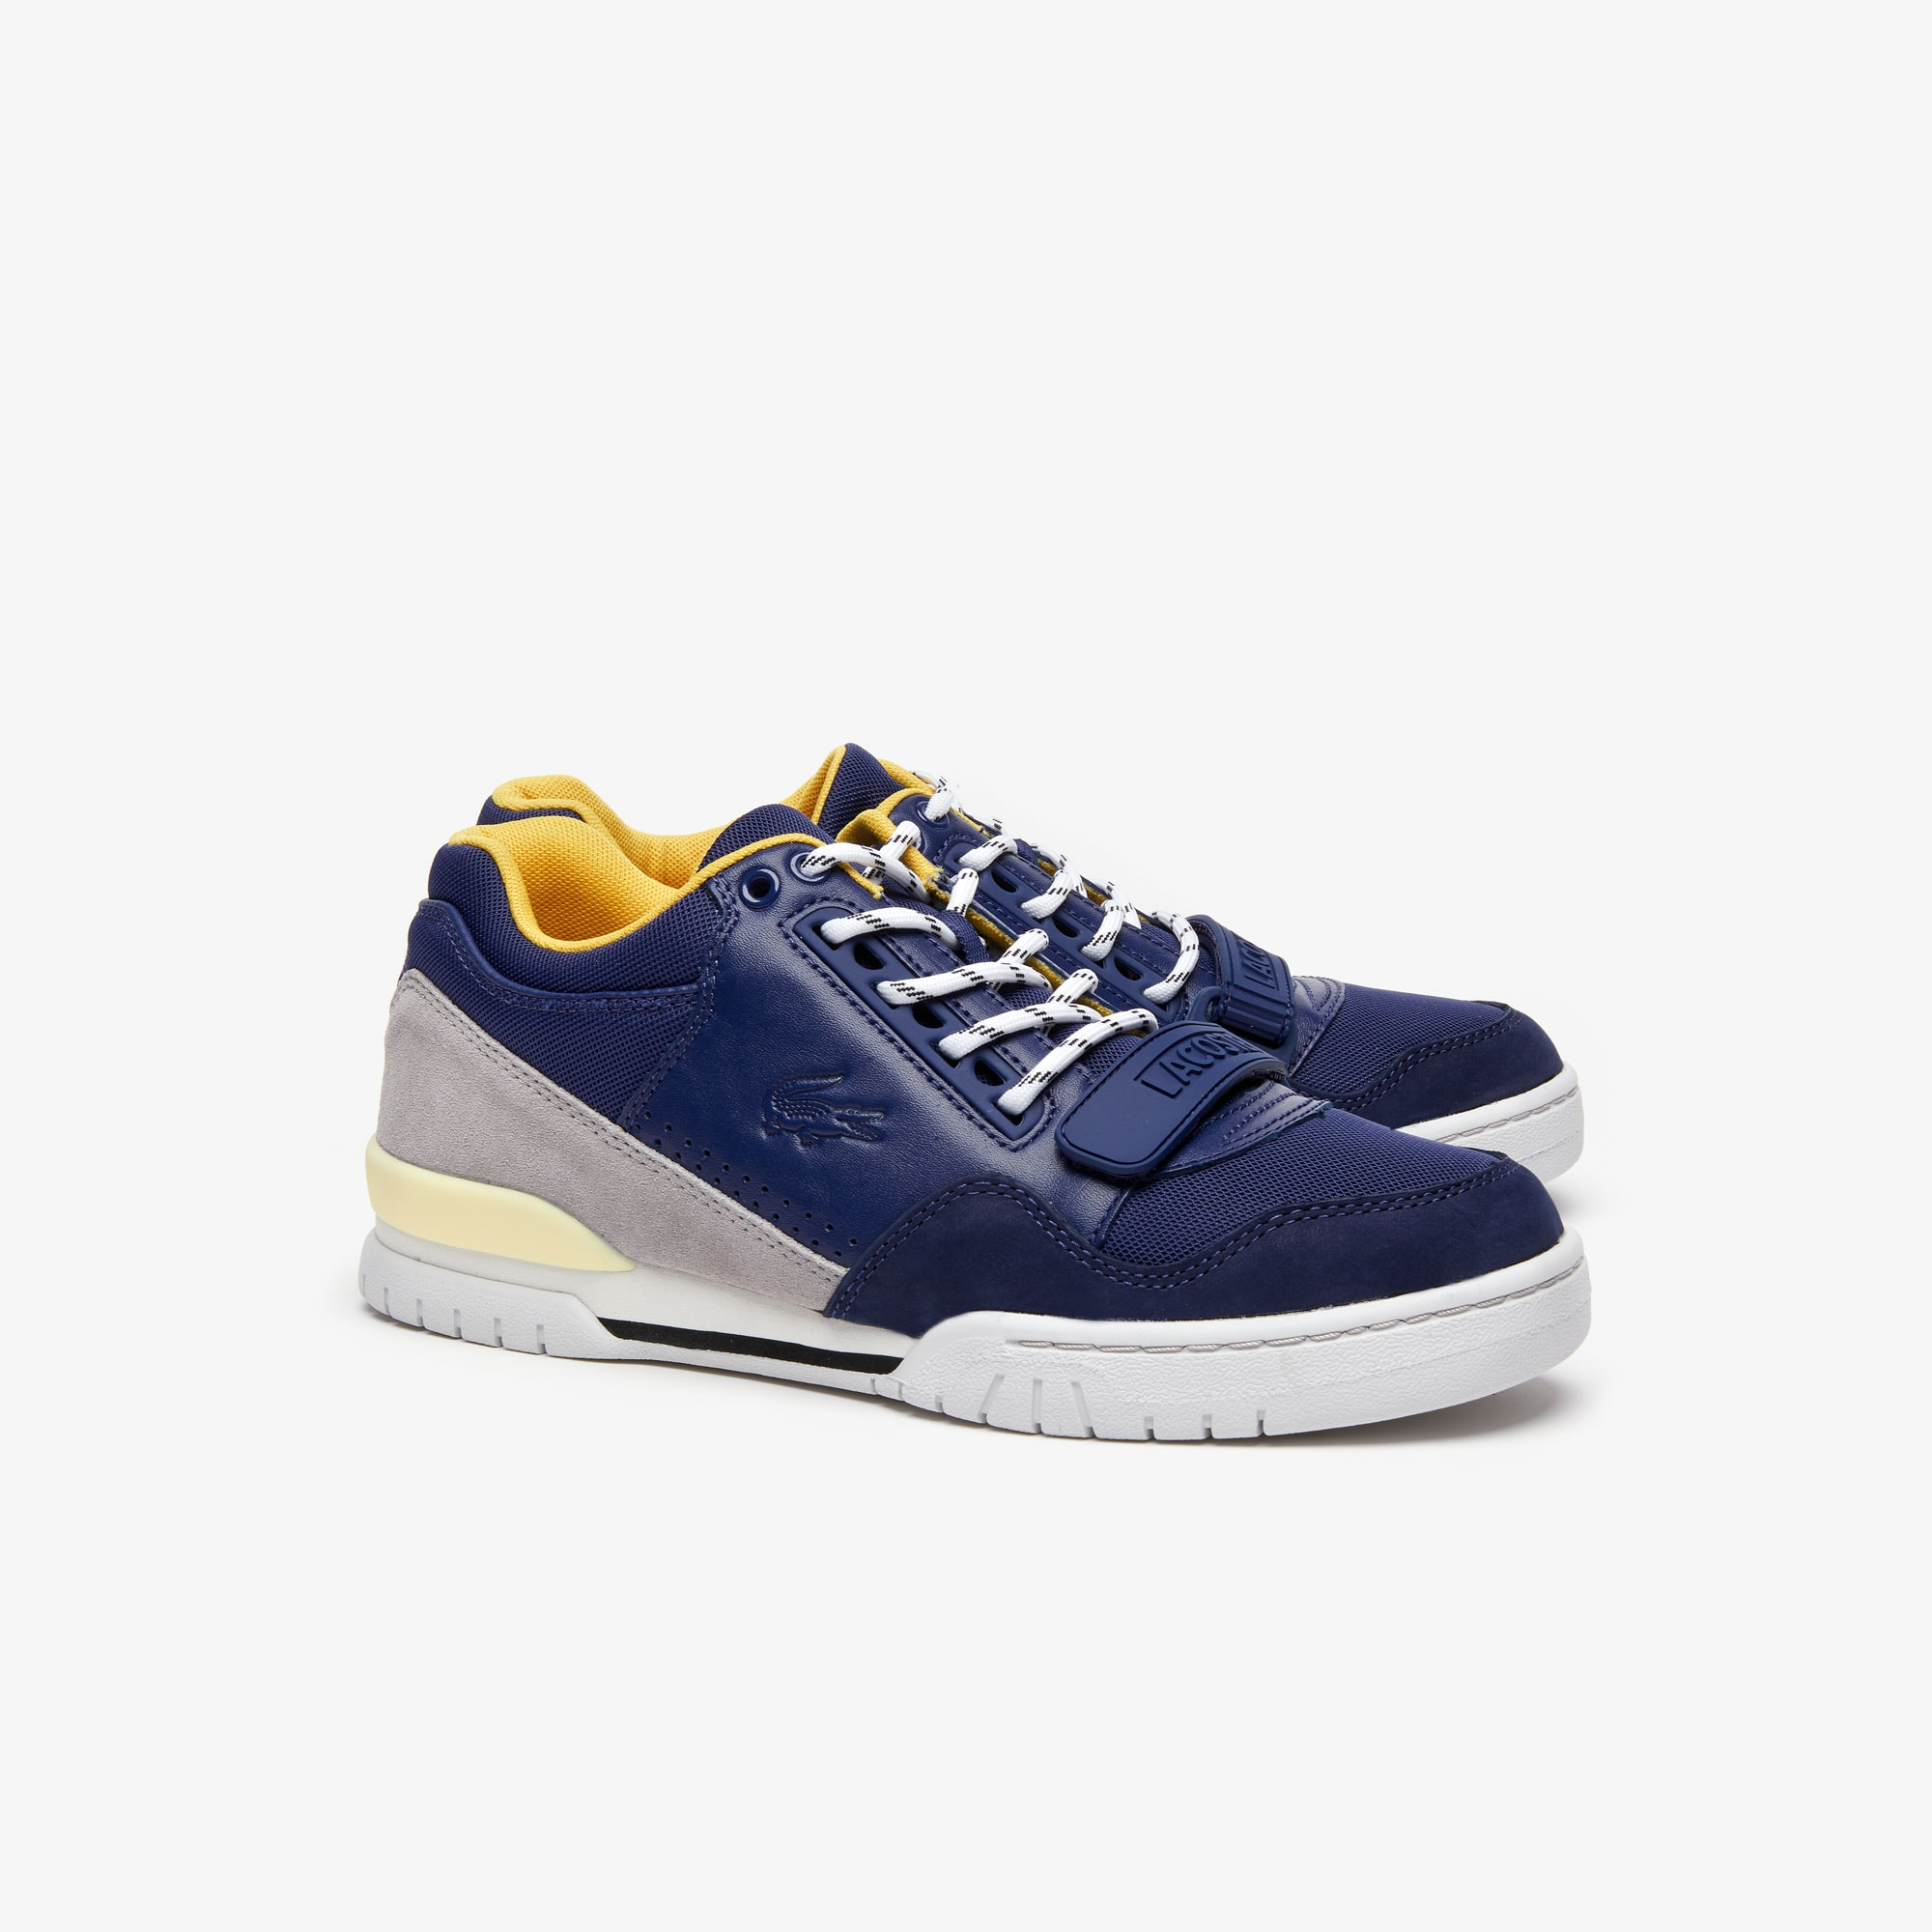 Men's Missouri Leather and Suede Trainers